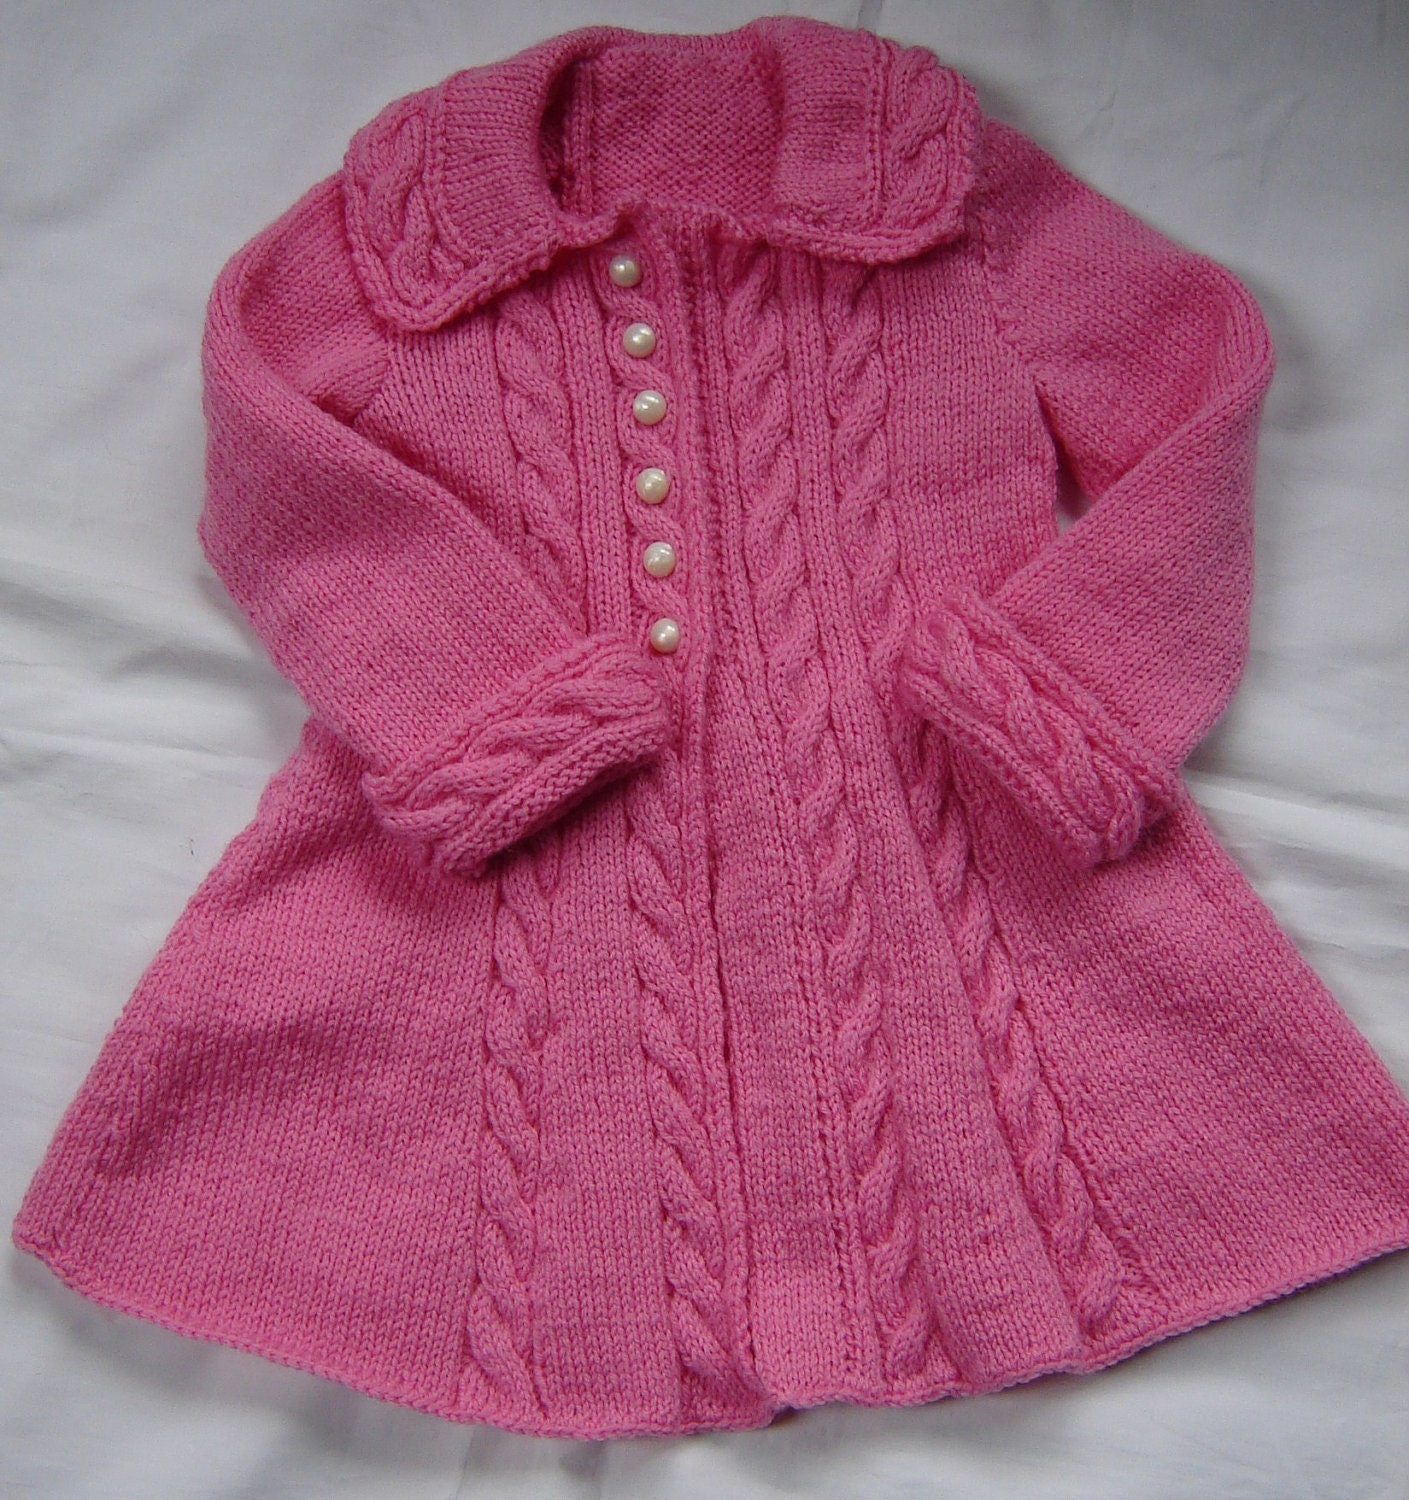 Knitting Pattern Swing Jacket : Baby Girls Toddler Sweater Coat Swing Style Hand by SwanAvenue